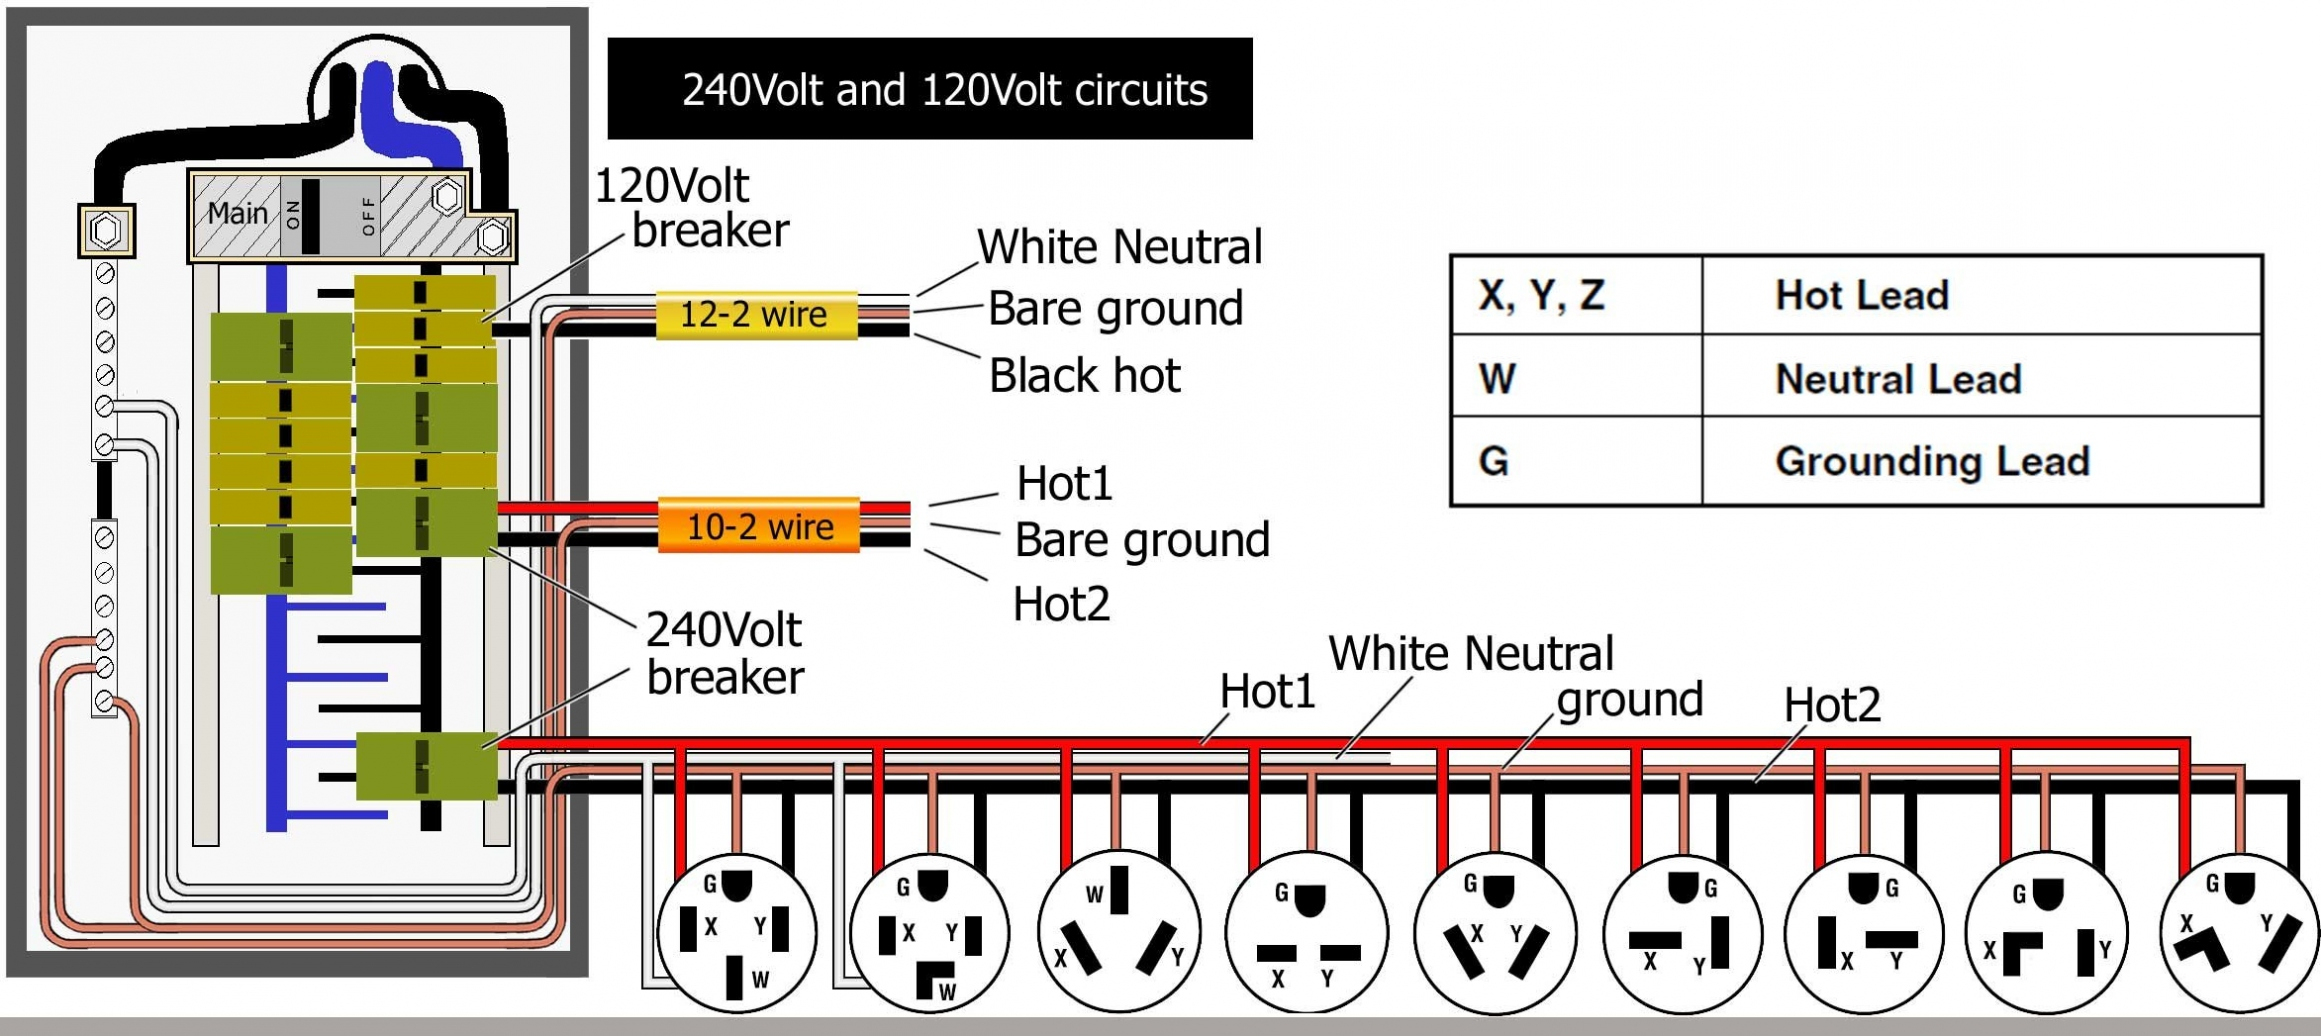 4 Prong Twist Lock Plug Wiring Diagram New 30 Amp Twist Lock Plug - 30 Amp Plug Wiring Diagram